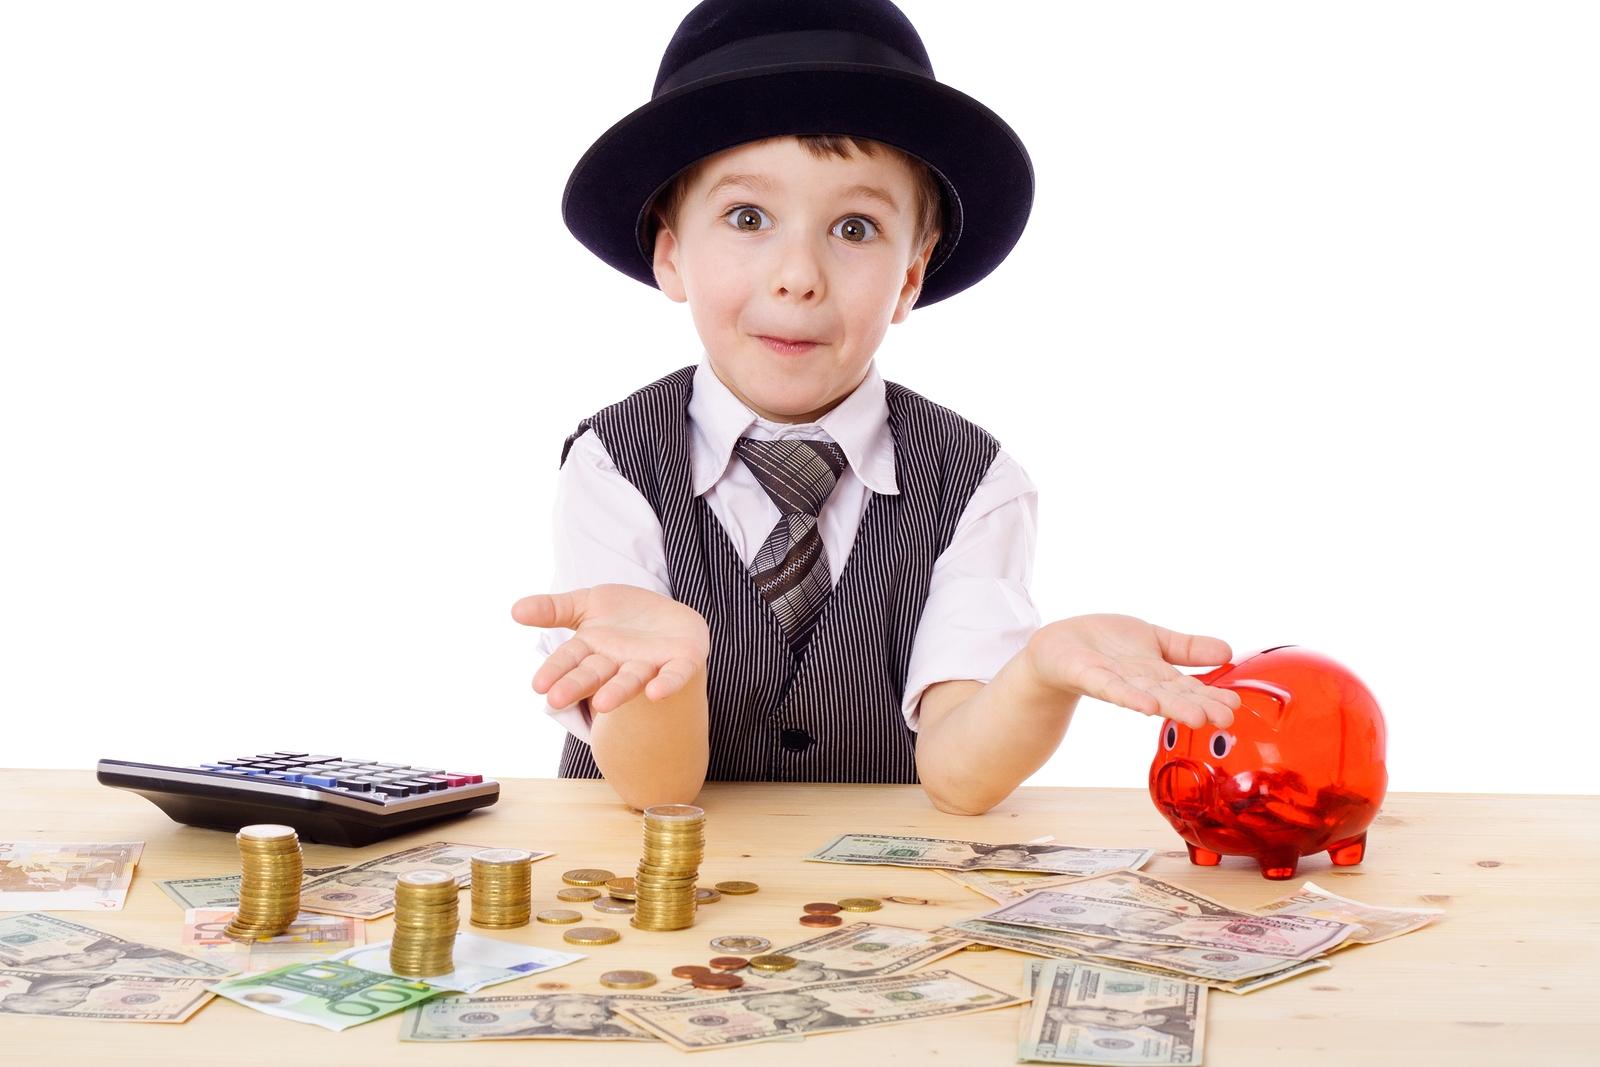 give_kids_an_allowance_to_learn_about_money_and_how_to_budget